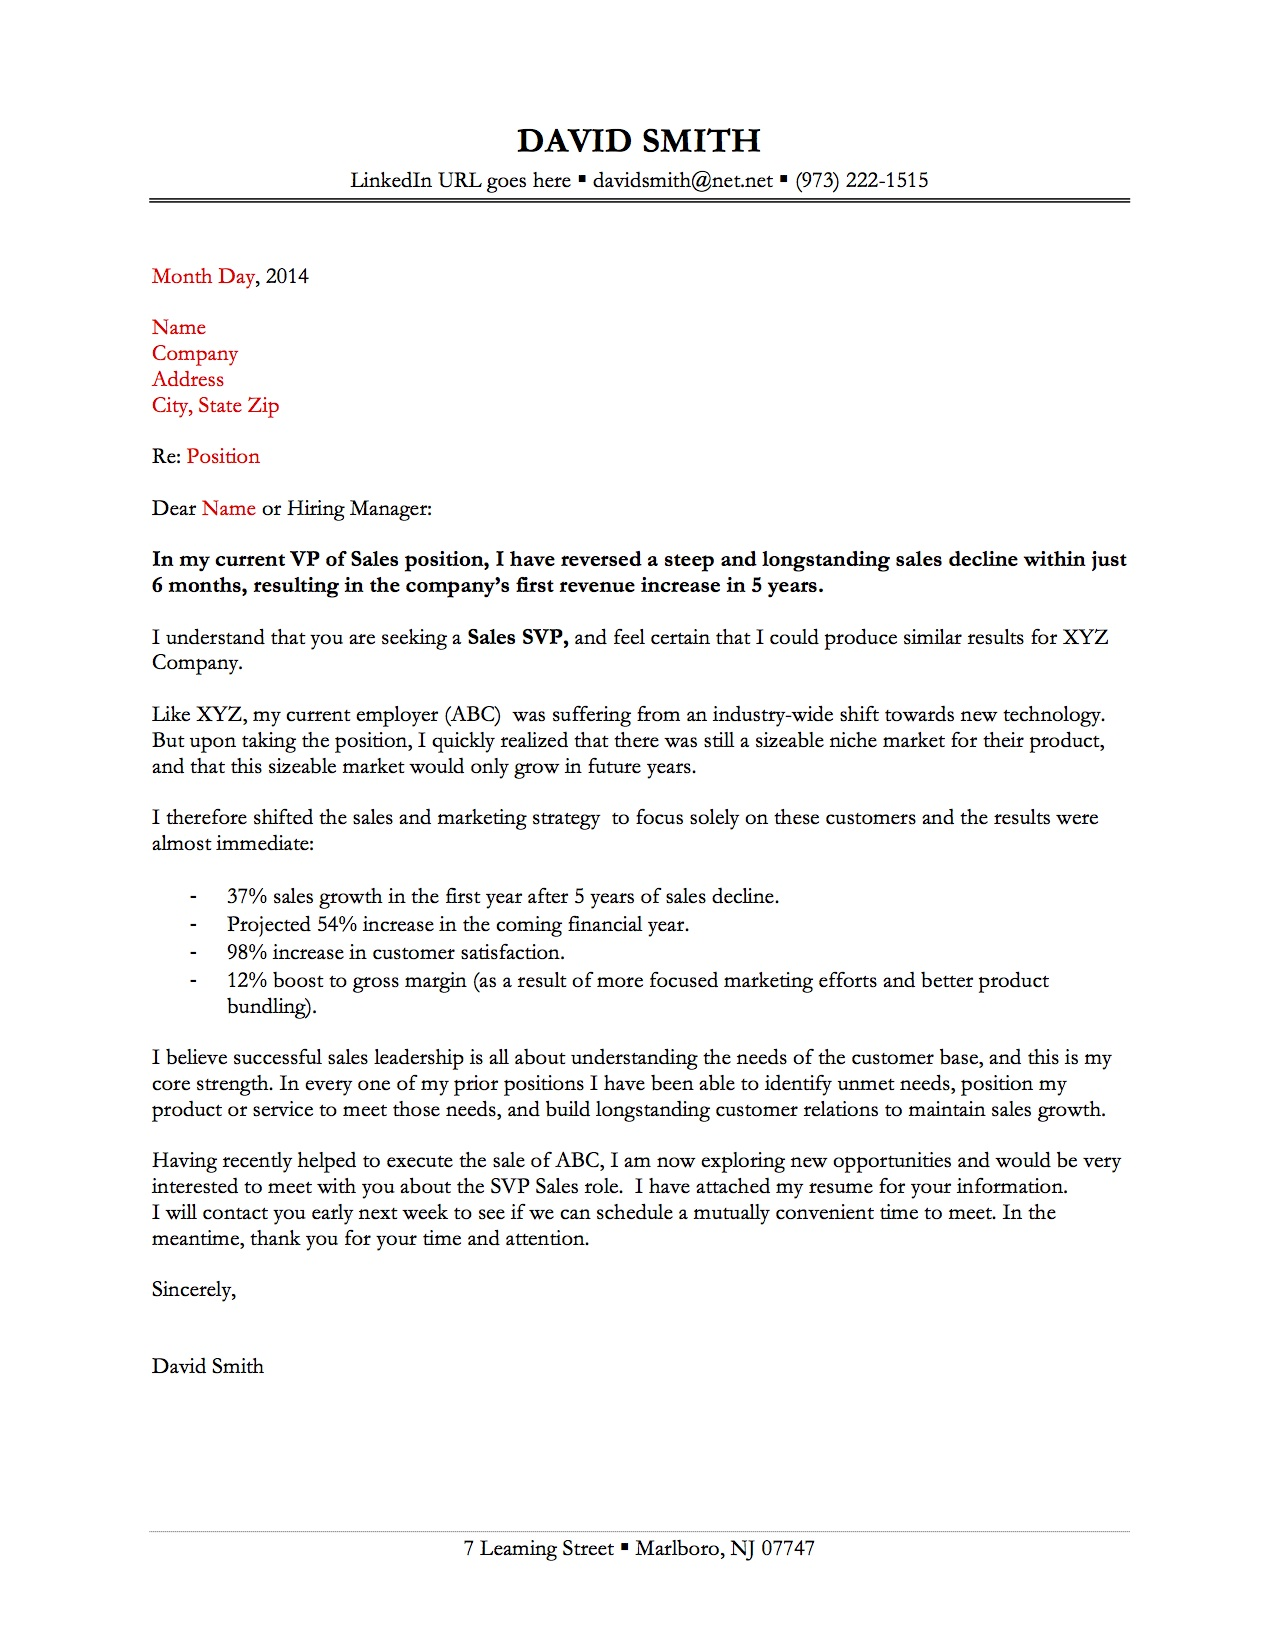 Great cover letter examples for resumes